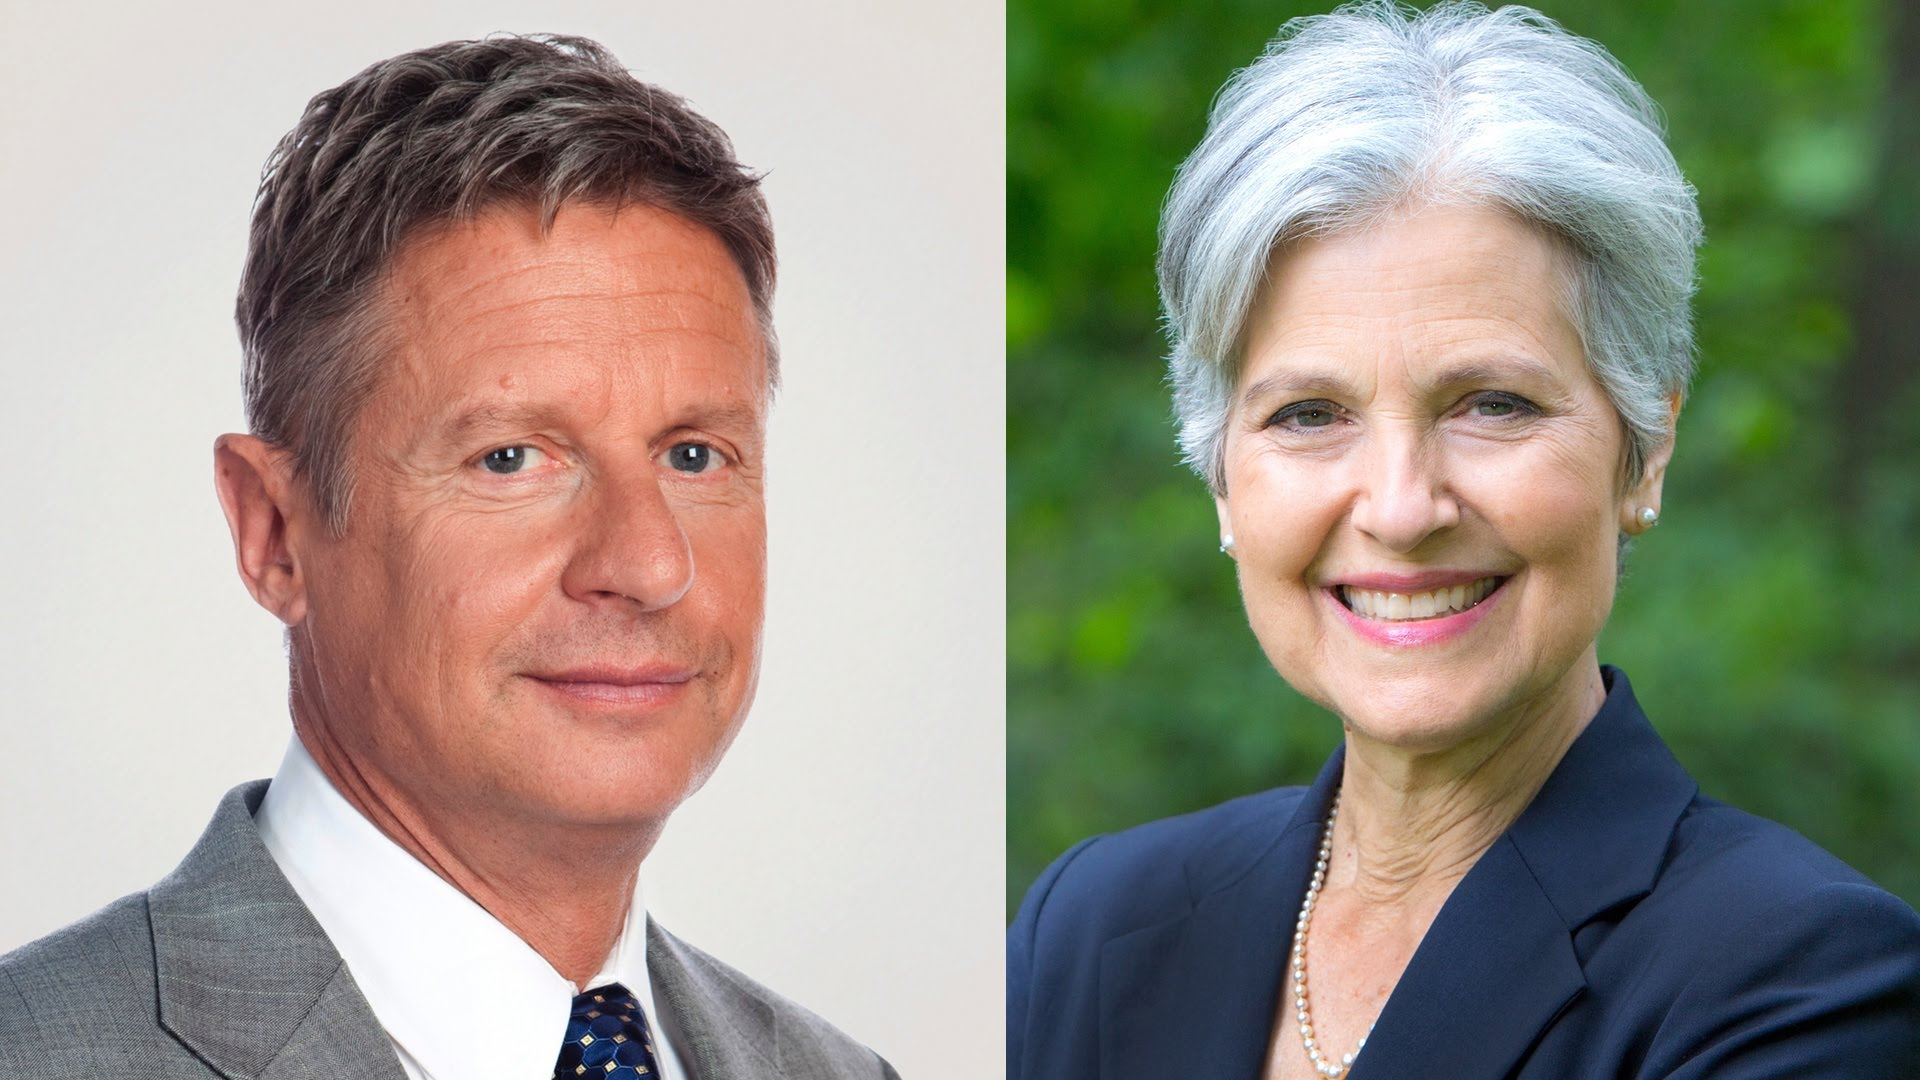 impact of third party candidates on the election